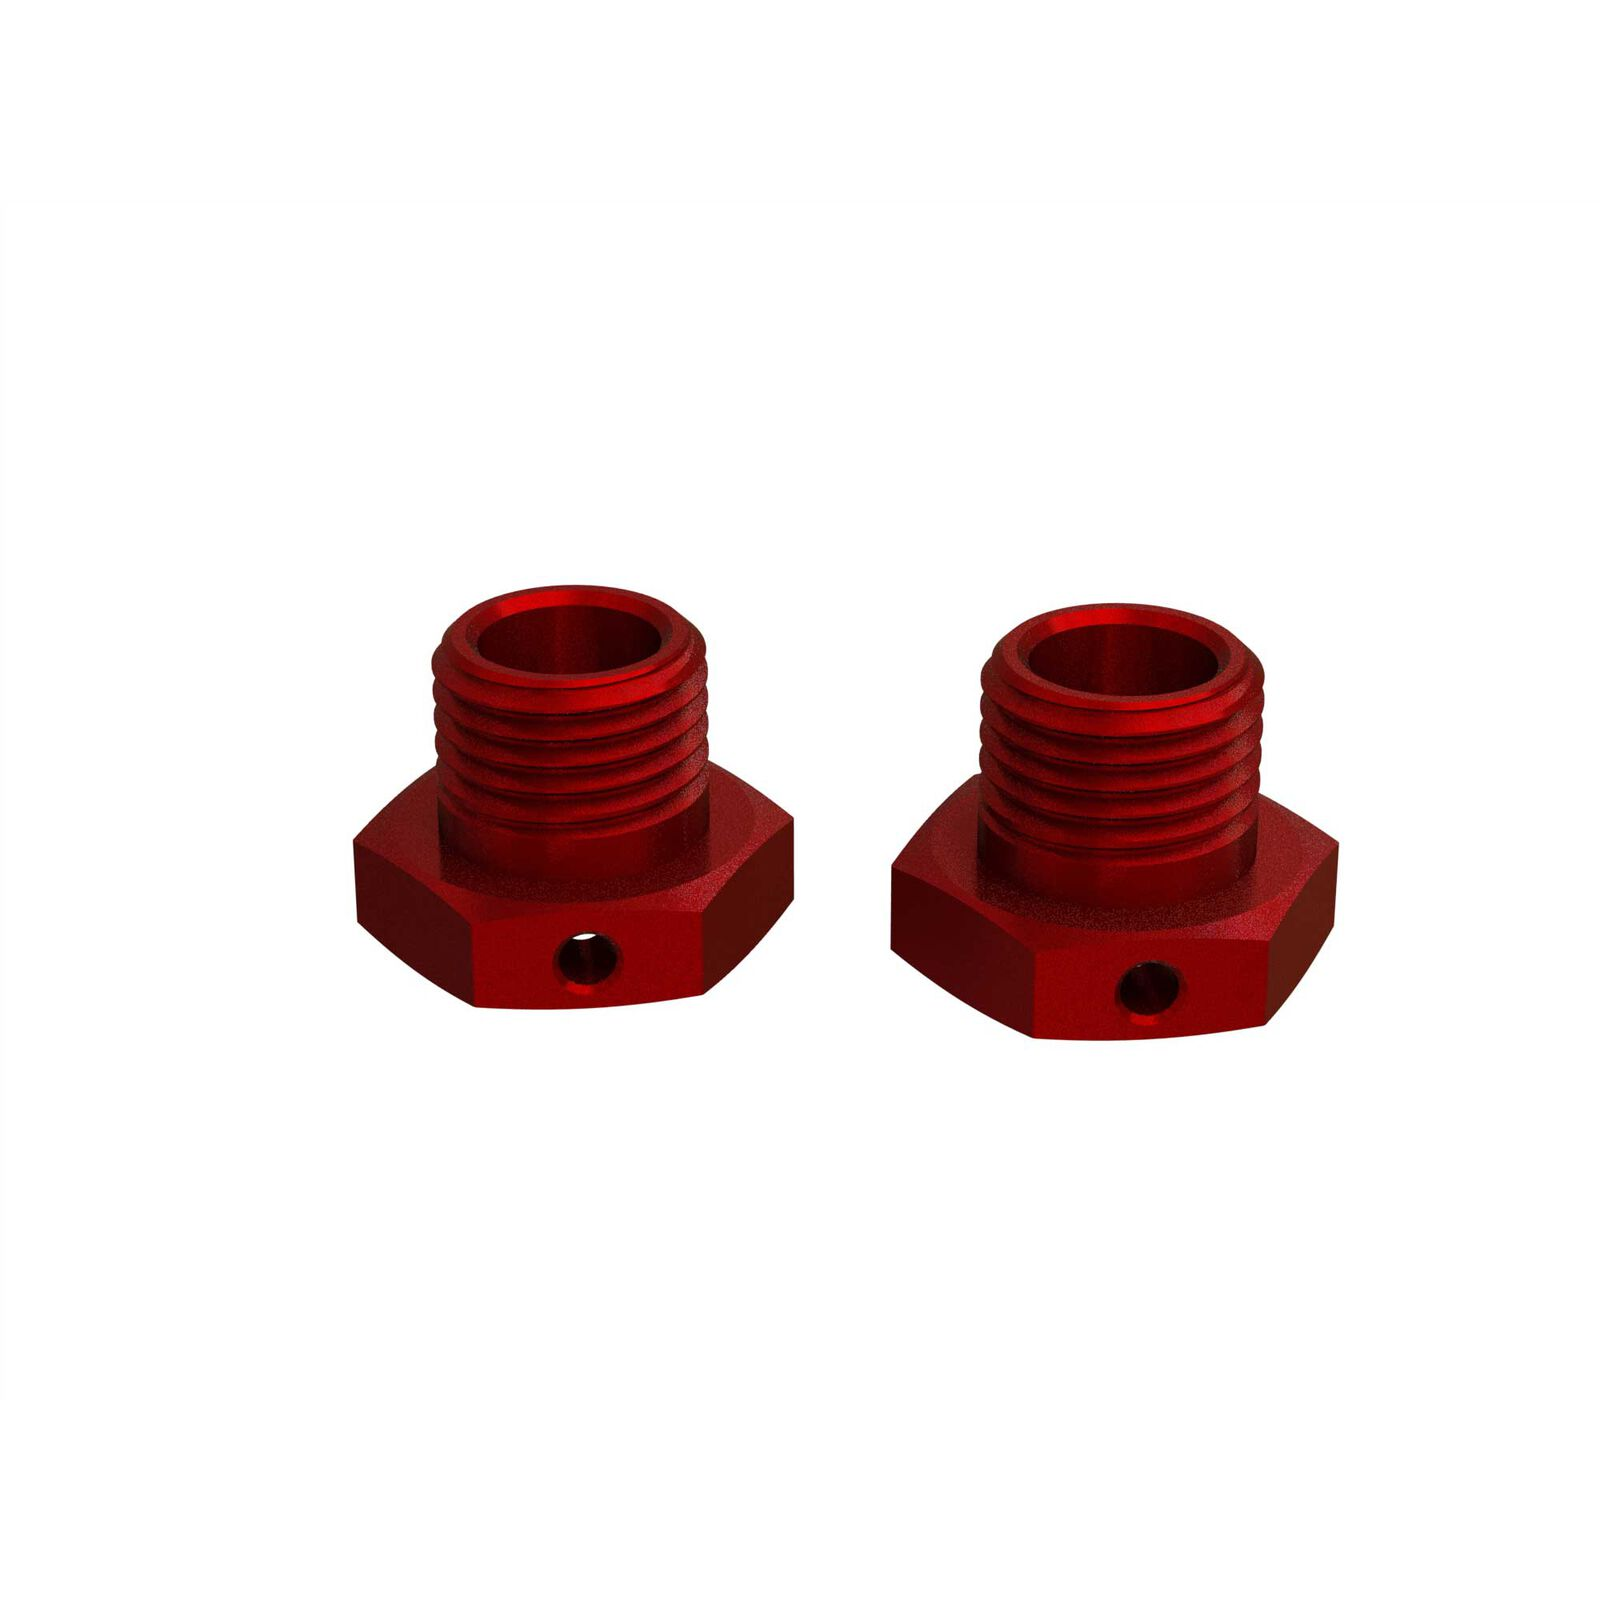 Aluminum Wheel Hex 17mm 14.6mm Thick Red (2)